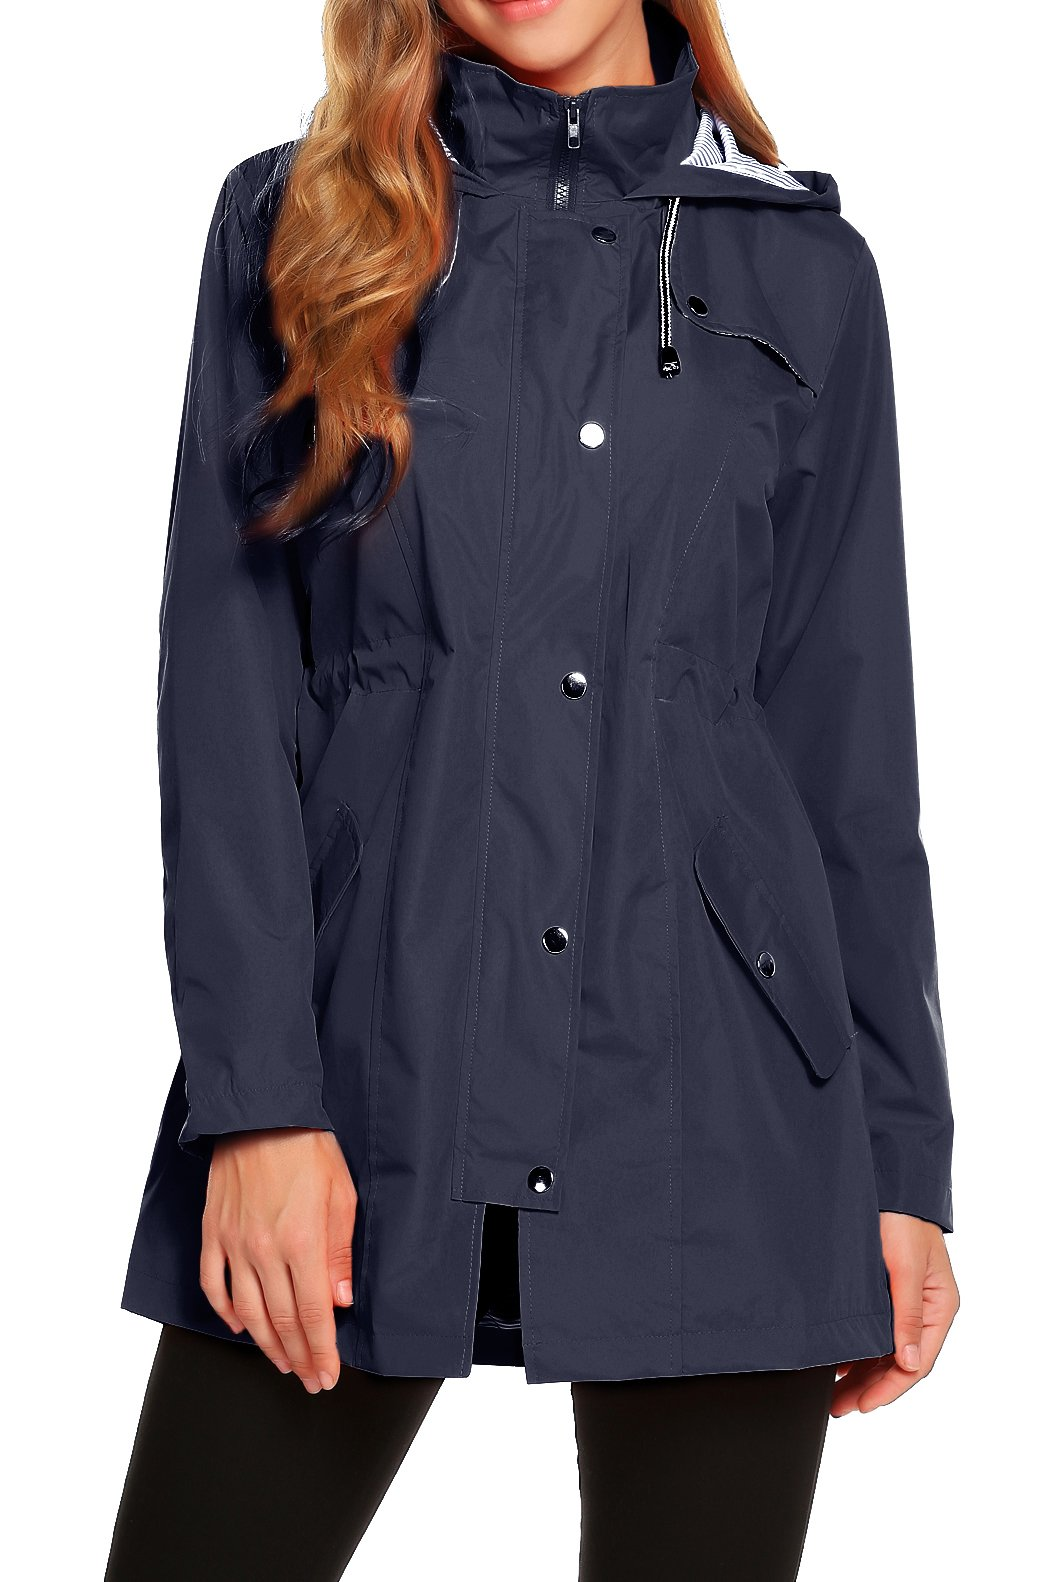 ZHENWEI Womens Lightweight Hooded Waterproof Active Outdoor Rain Jacket S-XXL (M, Navy Blue)